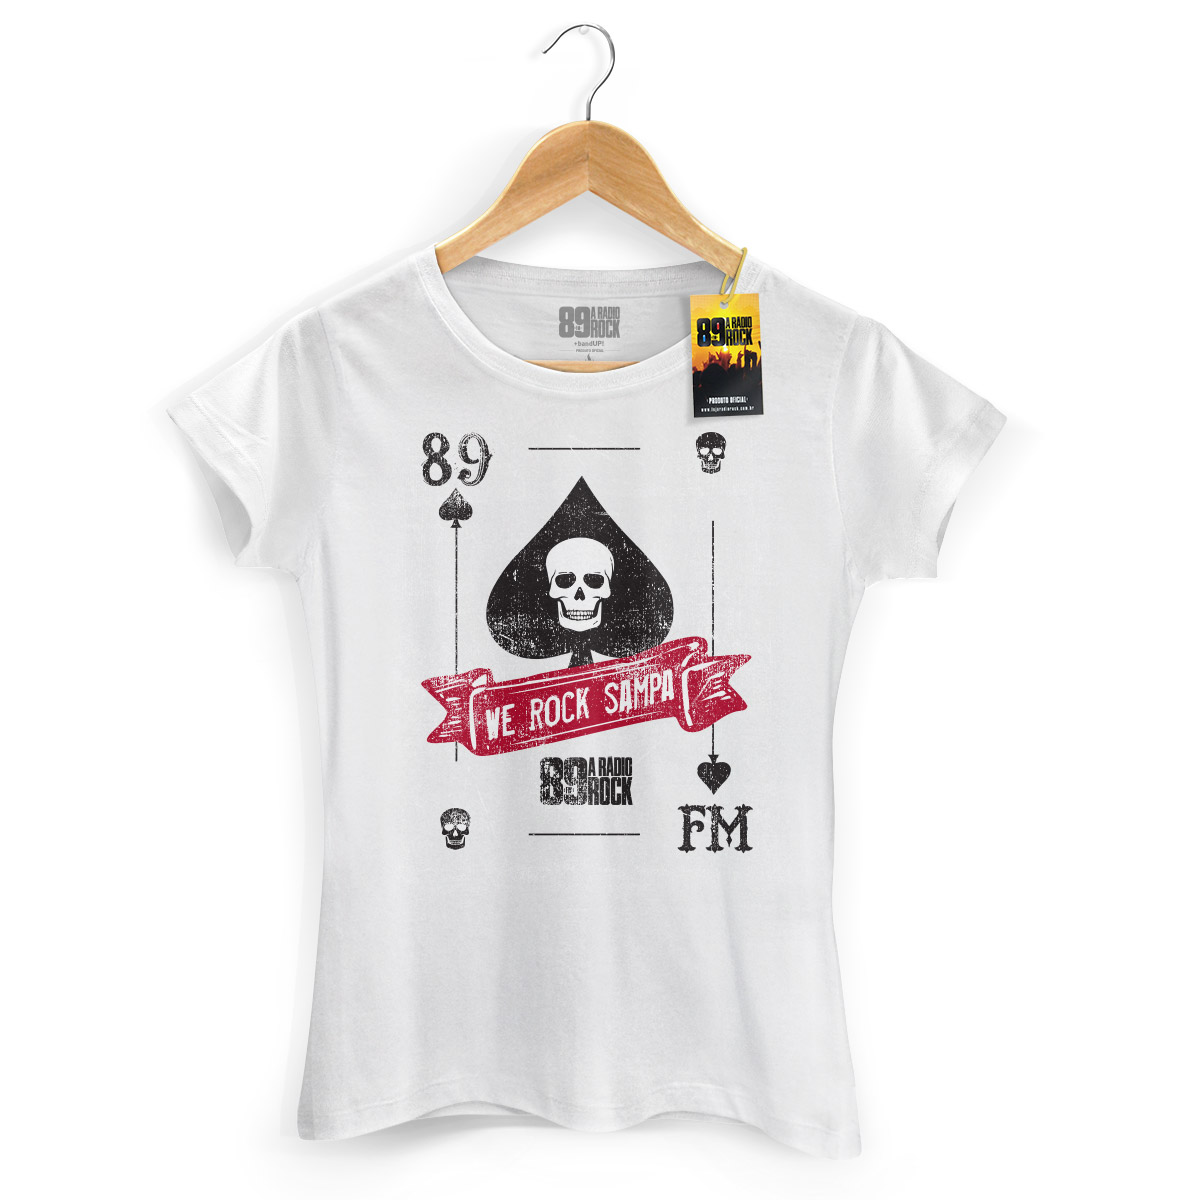 Camiseta Feminina 89 FM A Rádio Rock We Rock Sampa Card